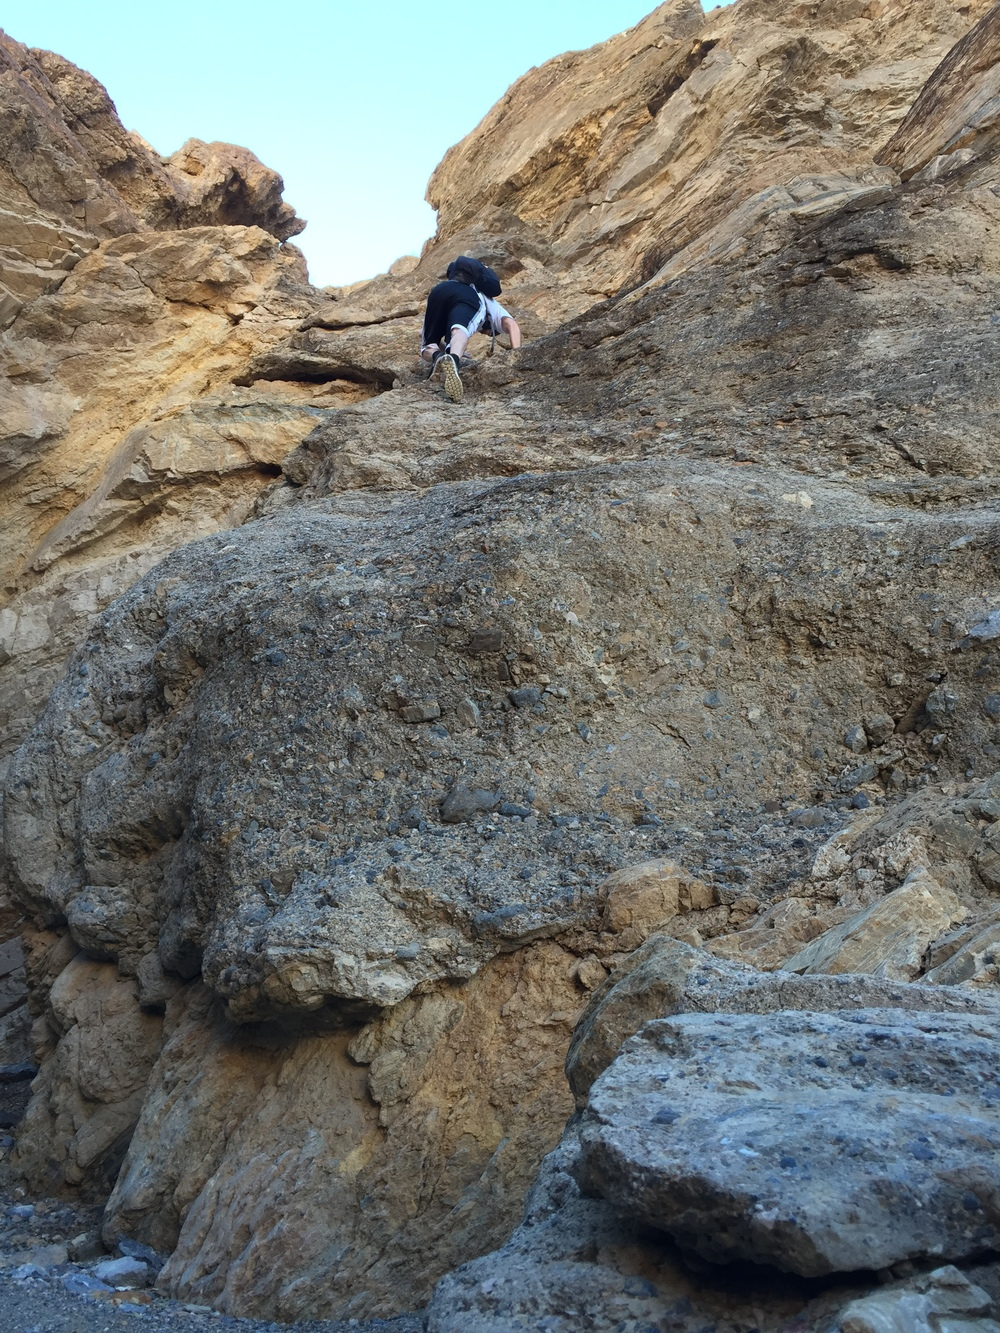 Scrambling up  at Mosaic Canyon in Death Valley.